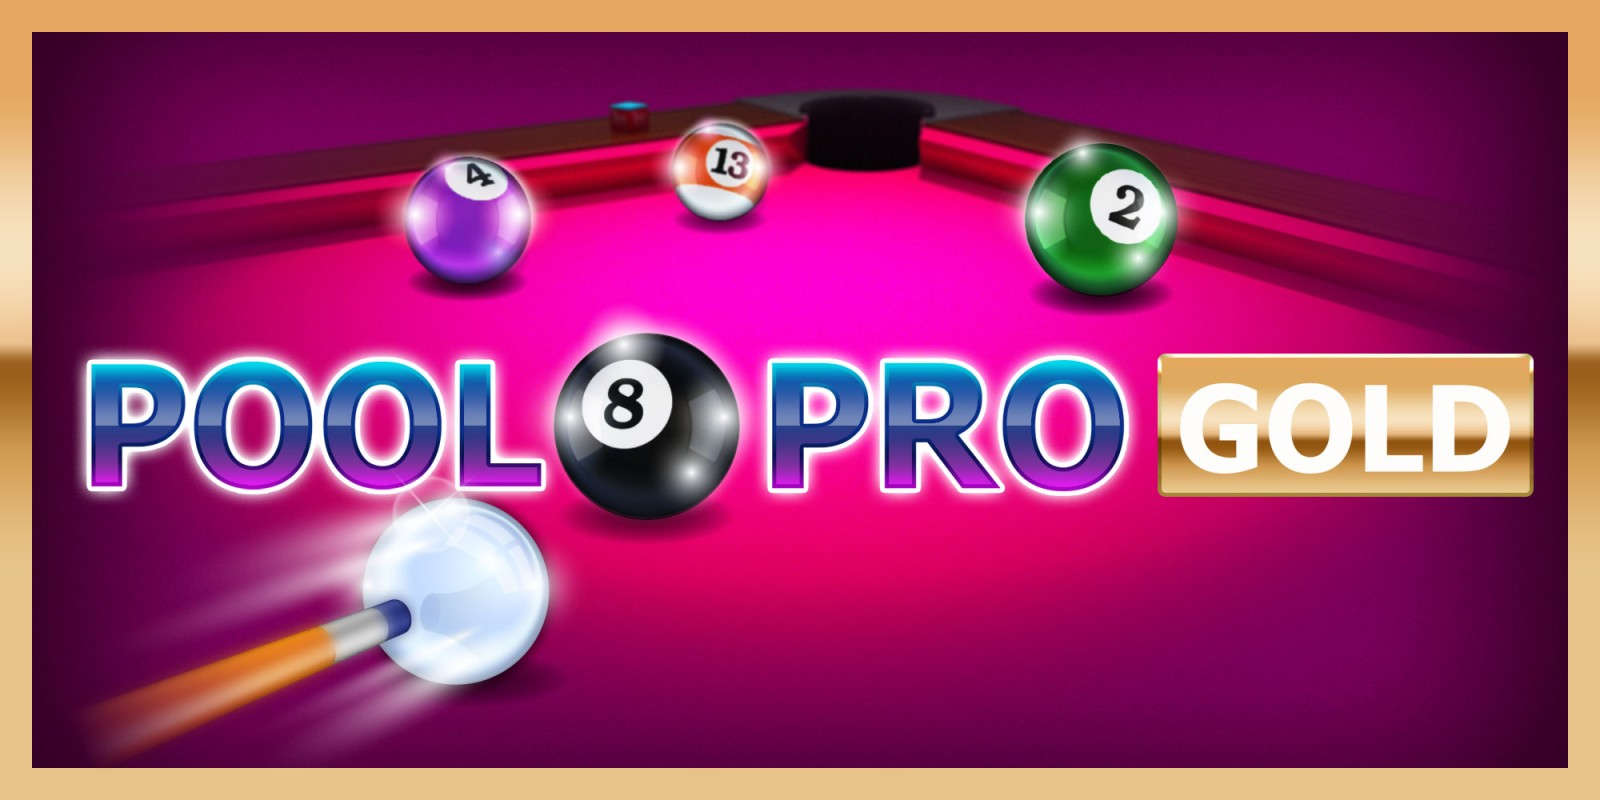 H2x1_NSwitchDS_PoolProGold_image1600w.jpg